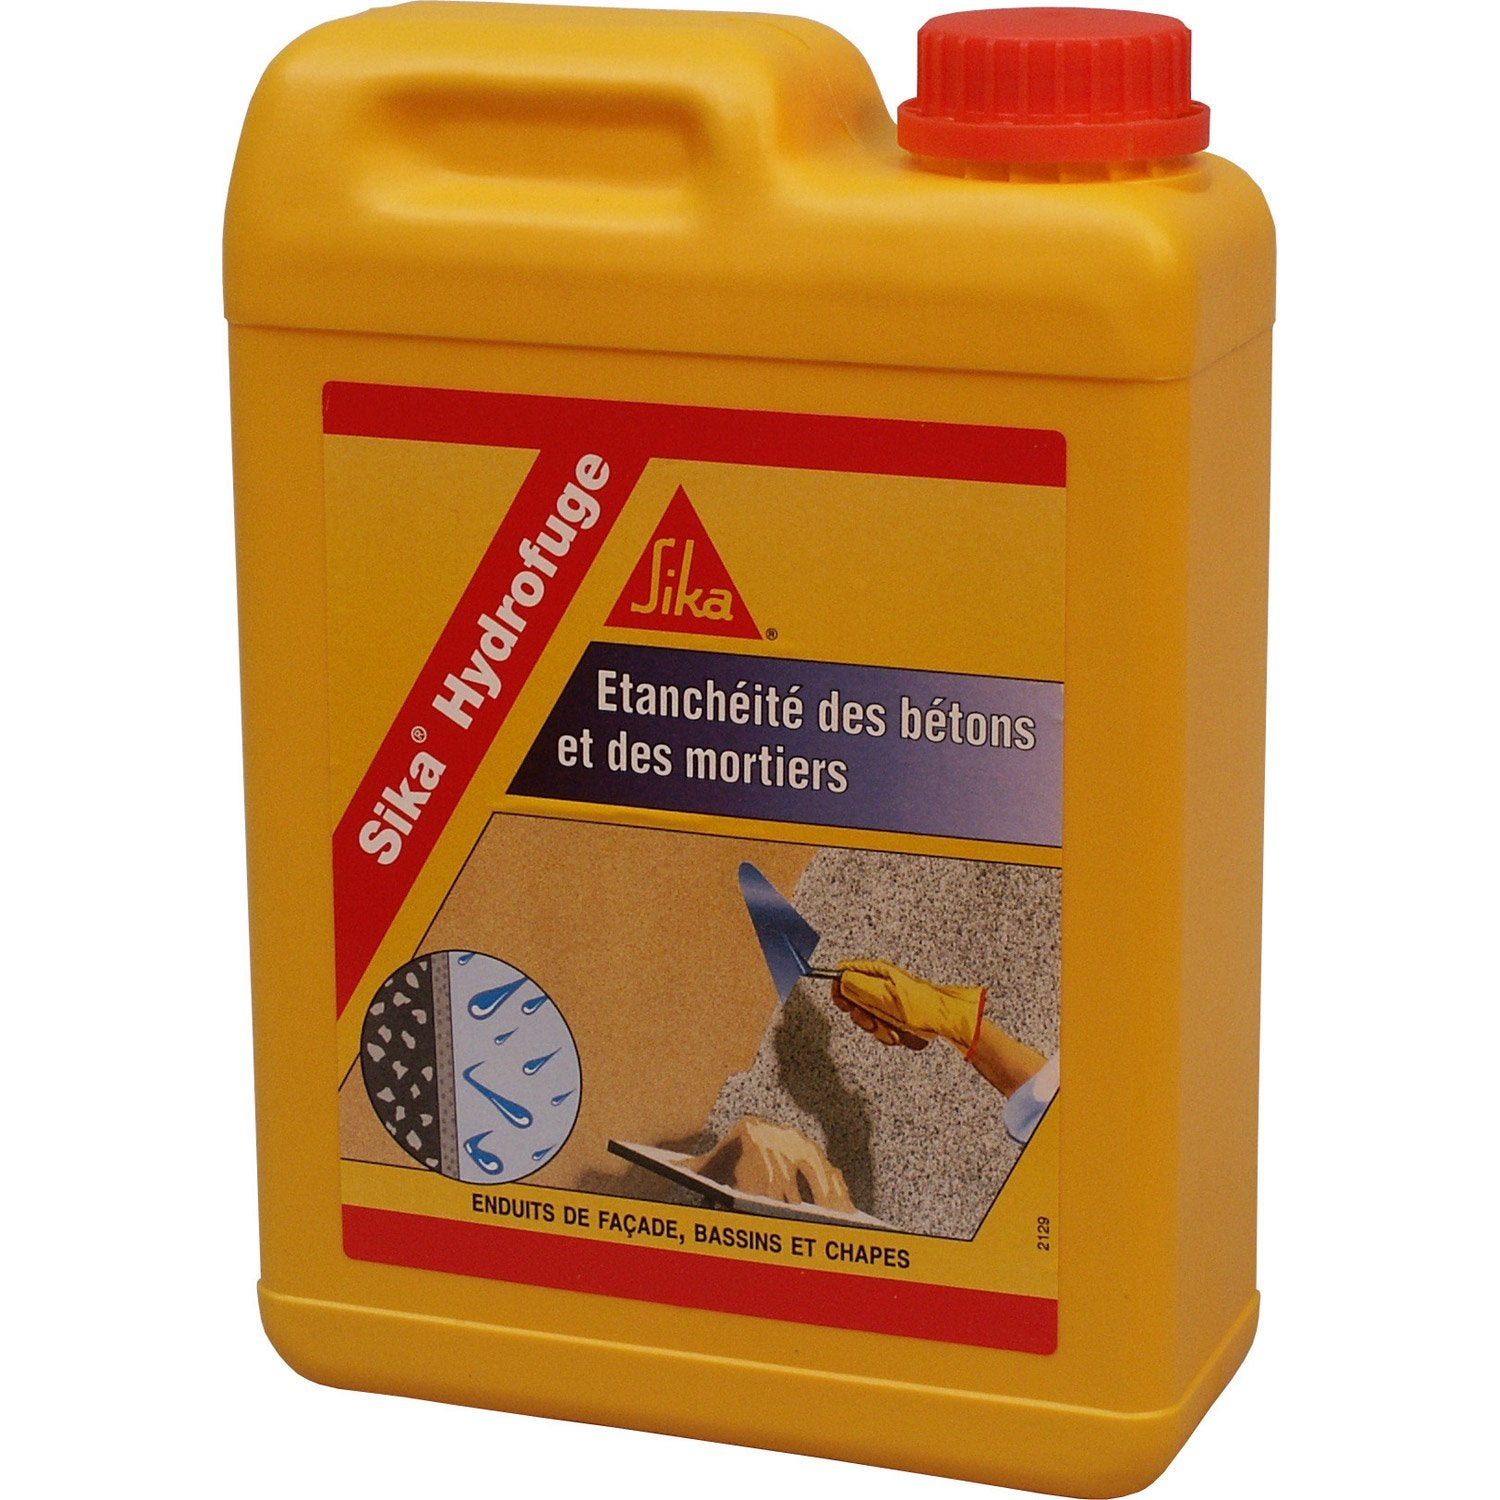 Elegant Hydrofuge Pour Mortier SIKA 2 L Blanc Idee